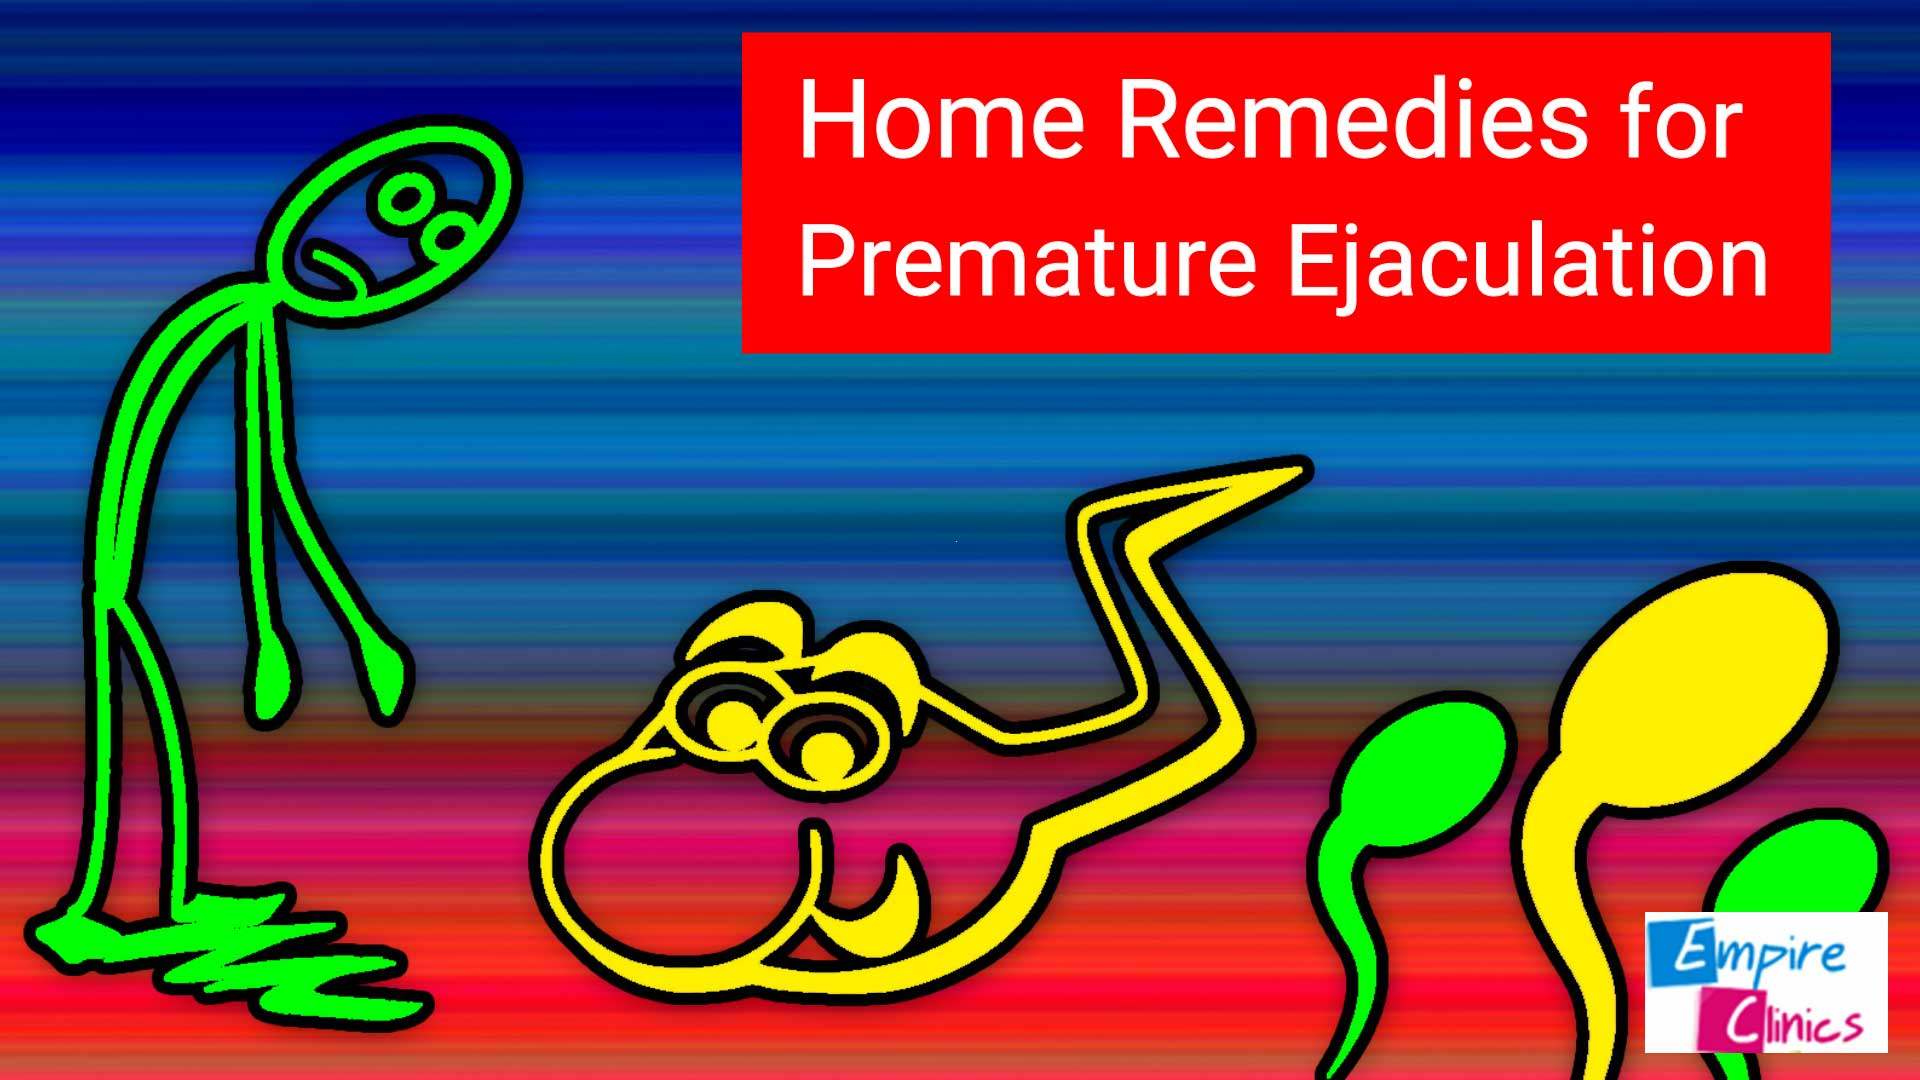 Remedies for Premature Ejaculation